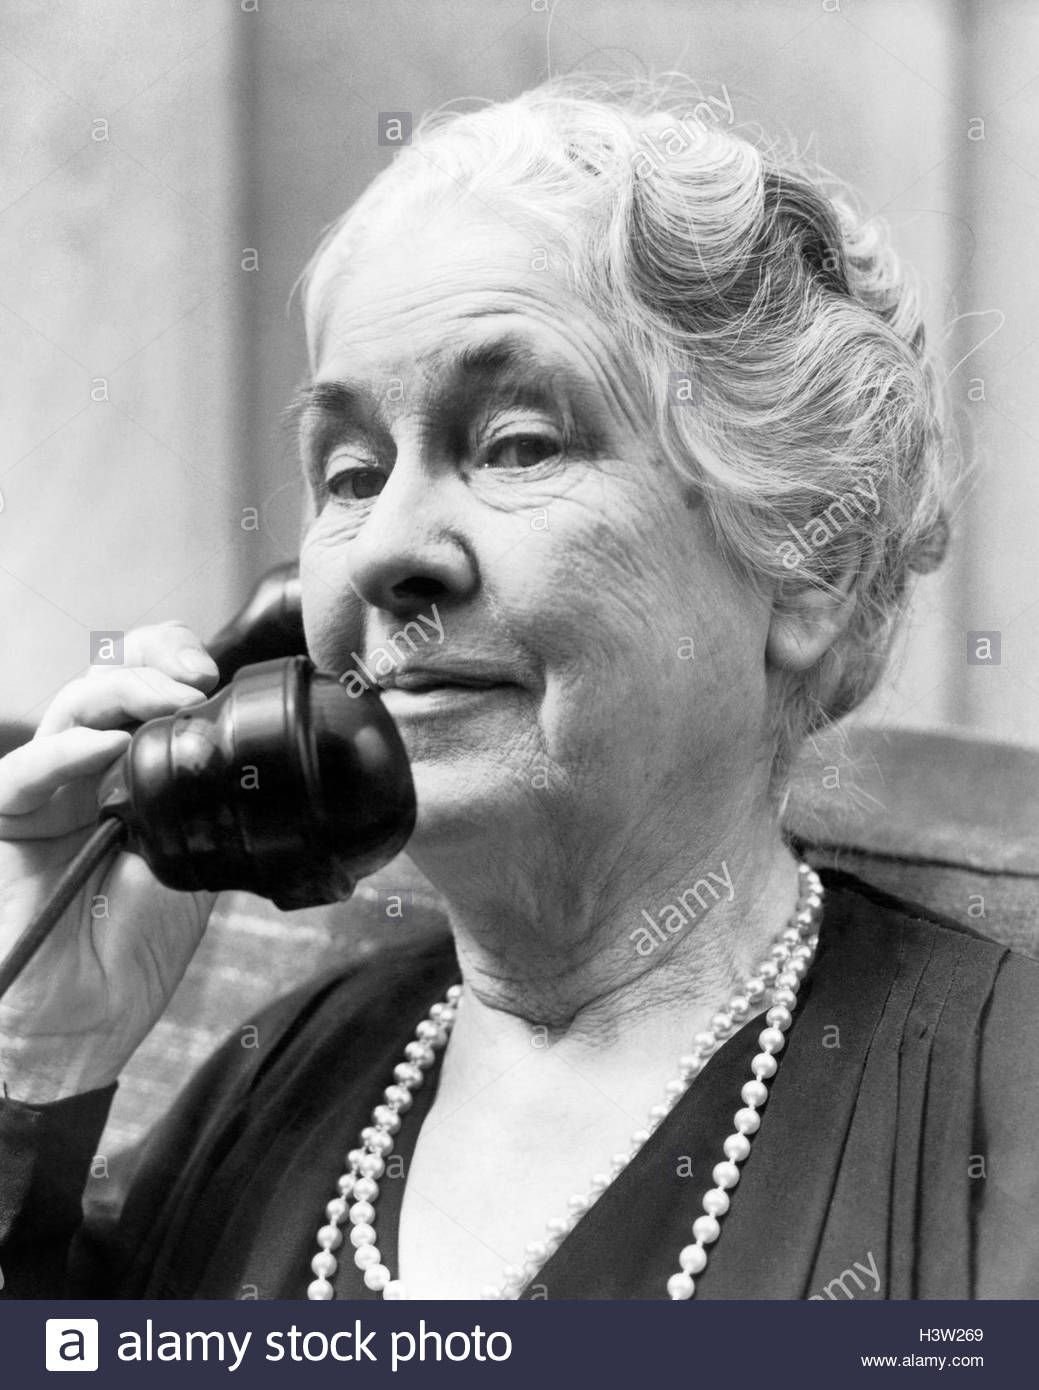 download this stock image: 1930s 1940s old woman on